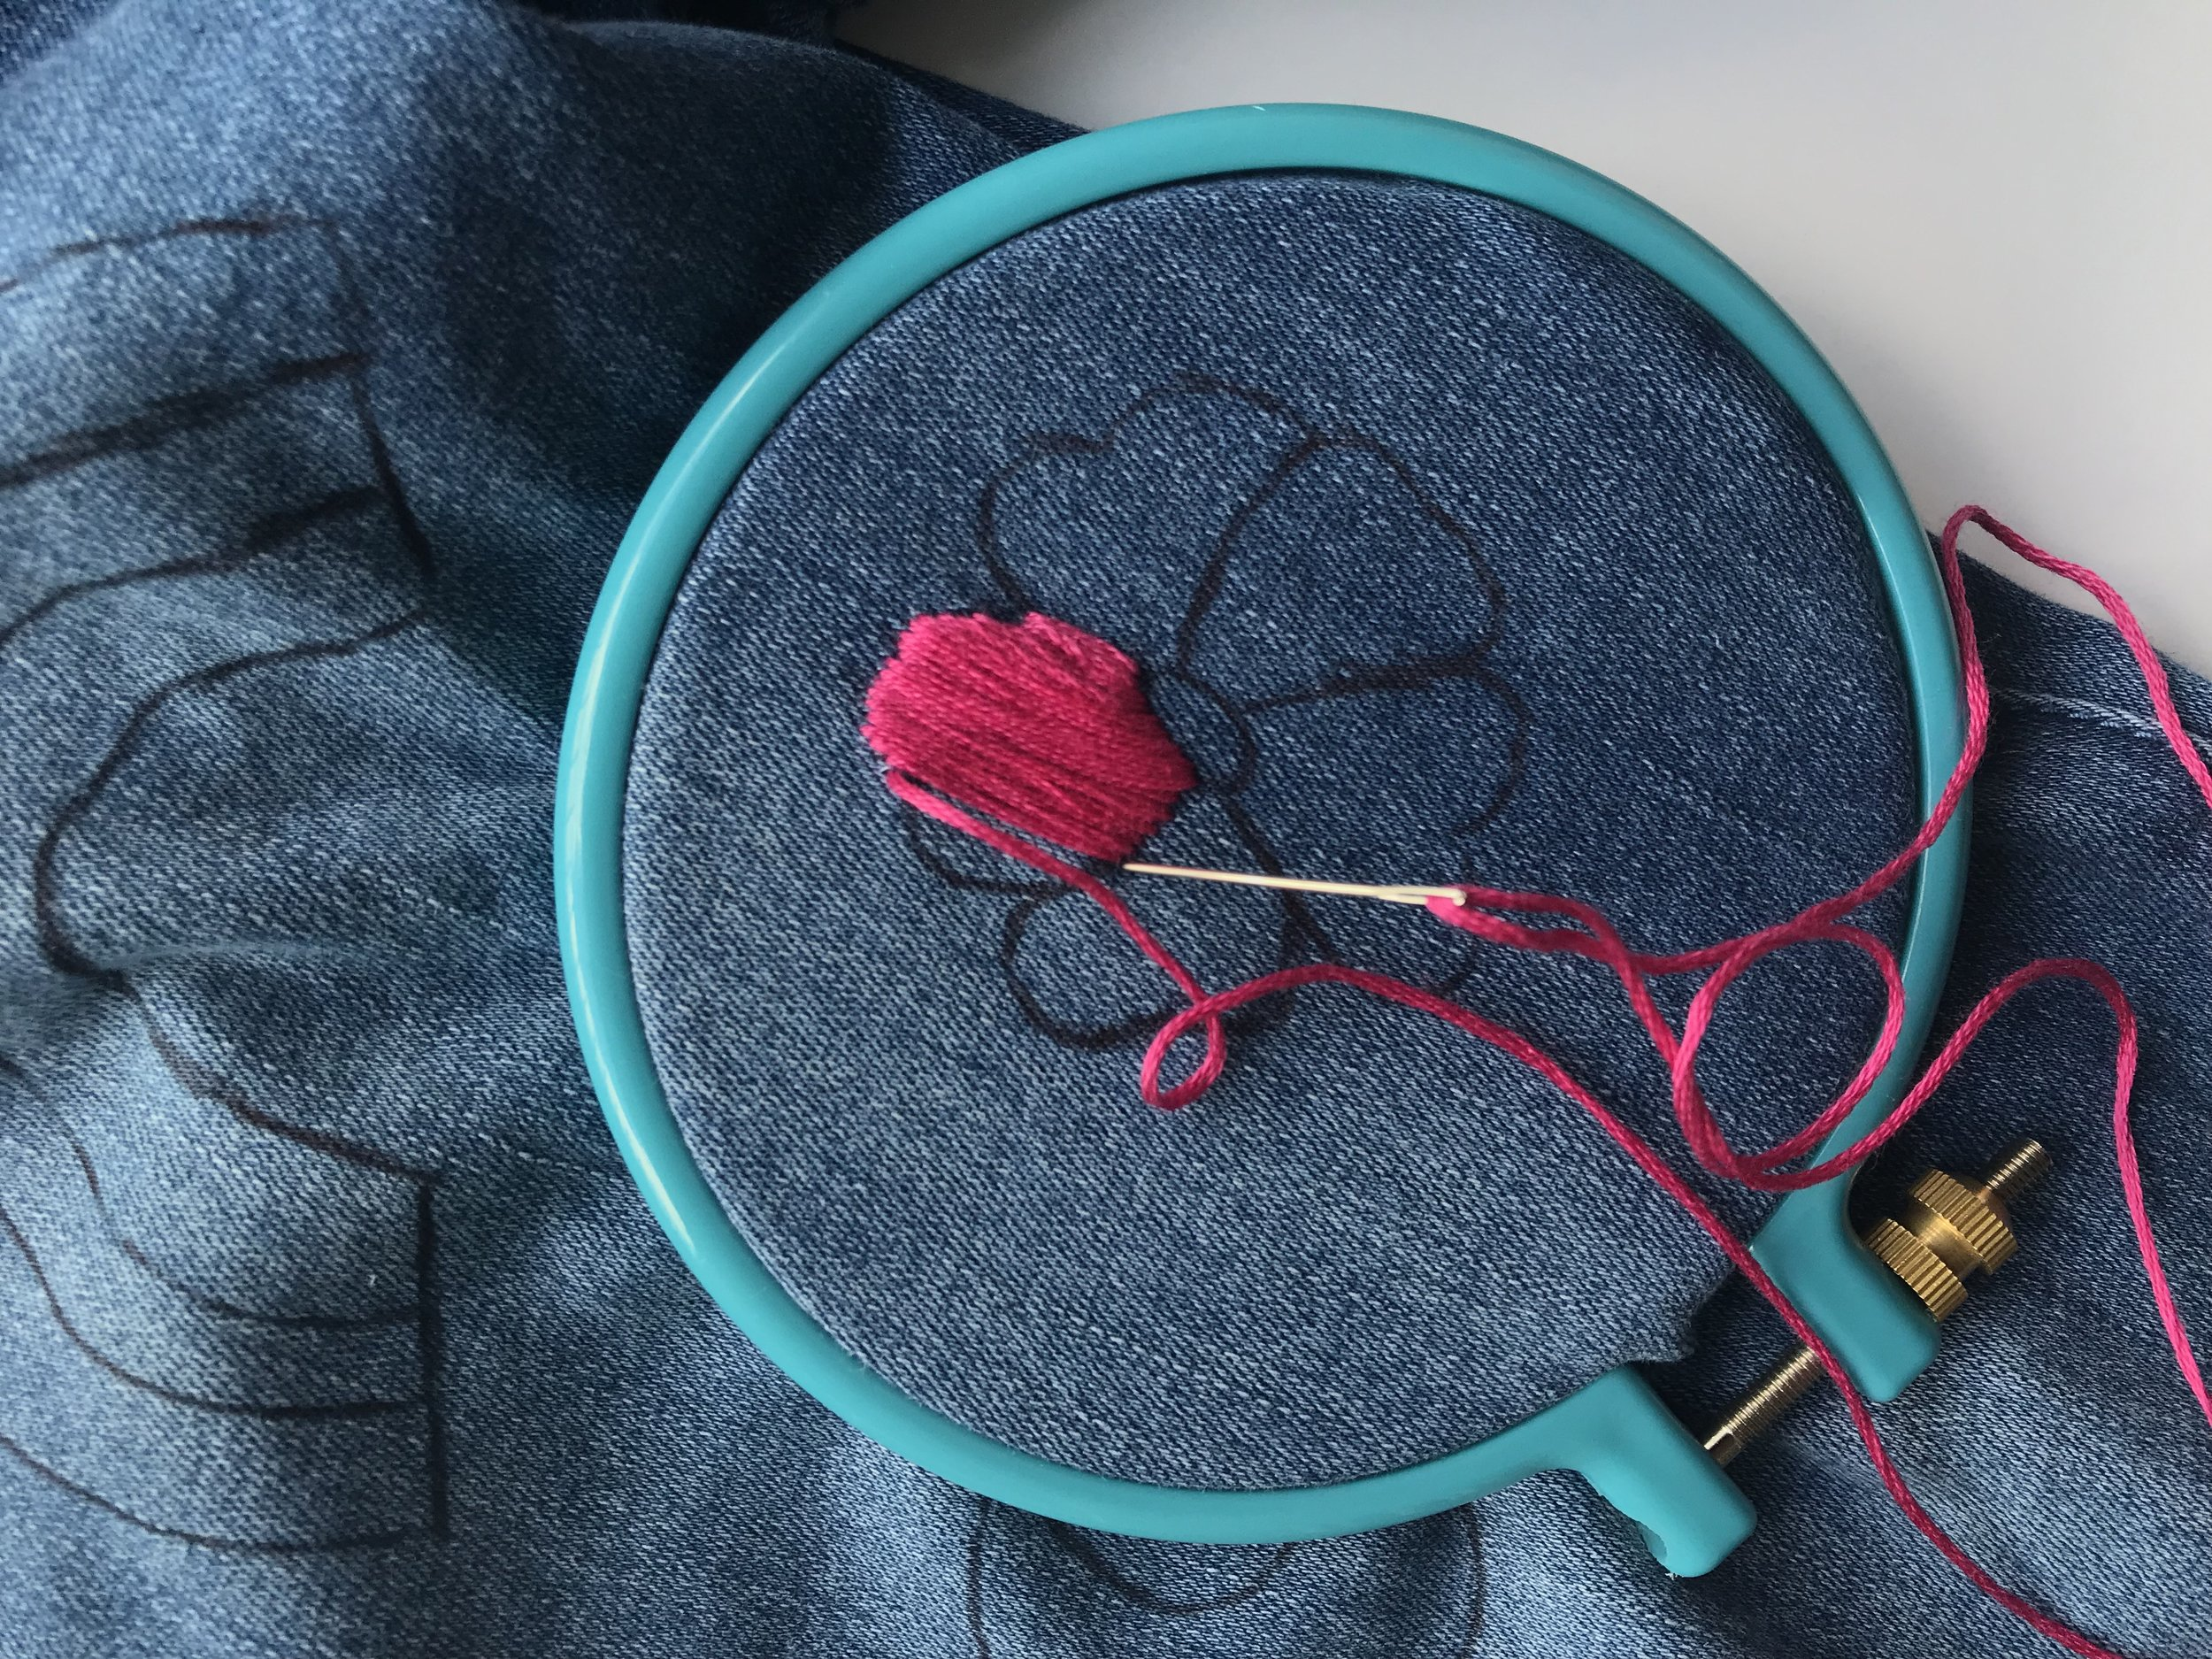 Place the embroidery hoop around your design and begin stitching. I used a straight stitch for this flower. Next time; I'll probably use 3 out of the 6 threads for a flatter look.